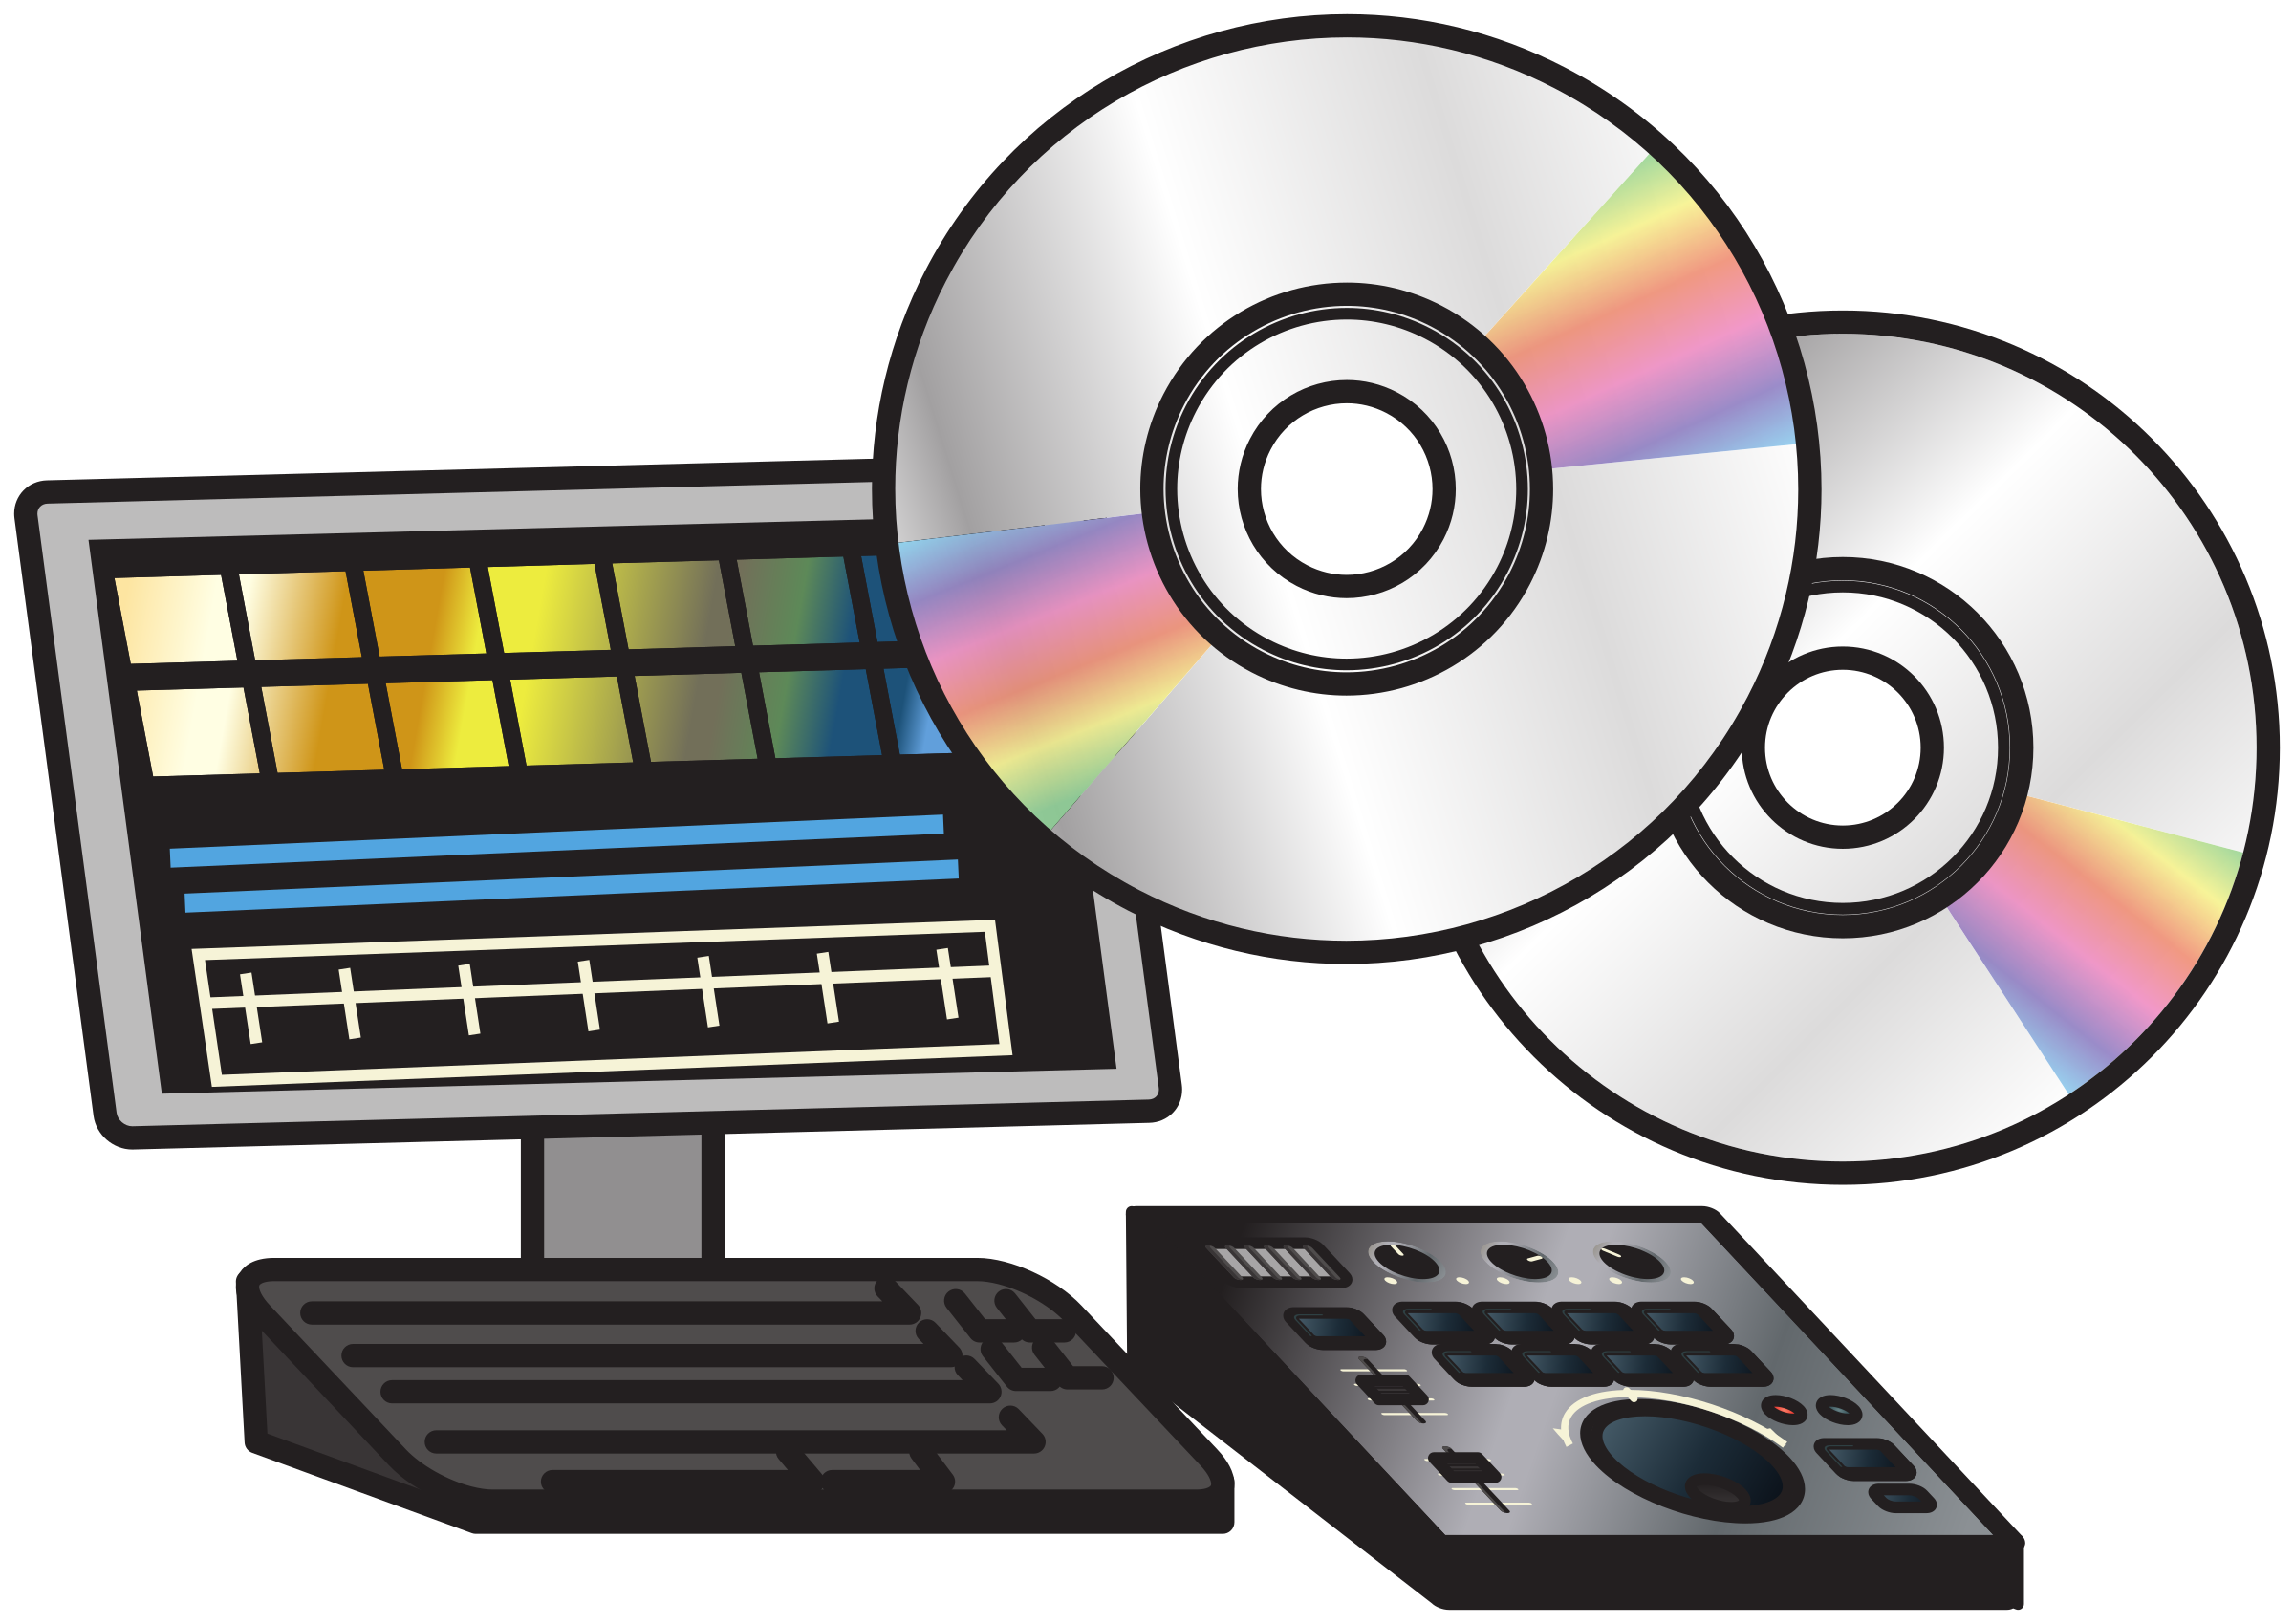 Non-linear video editing system 3 by Juhele